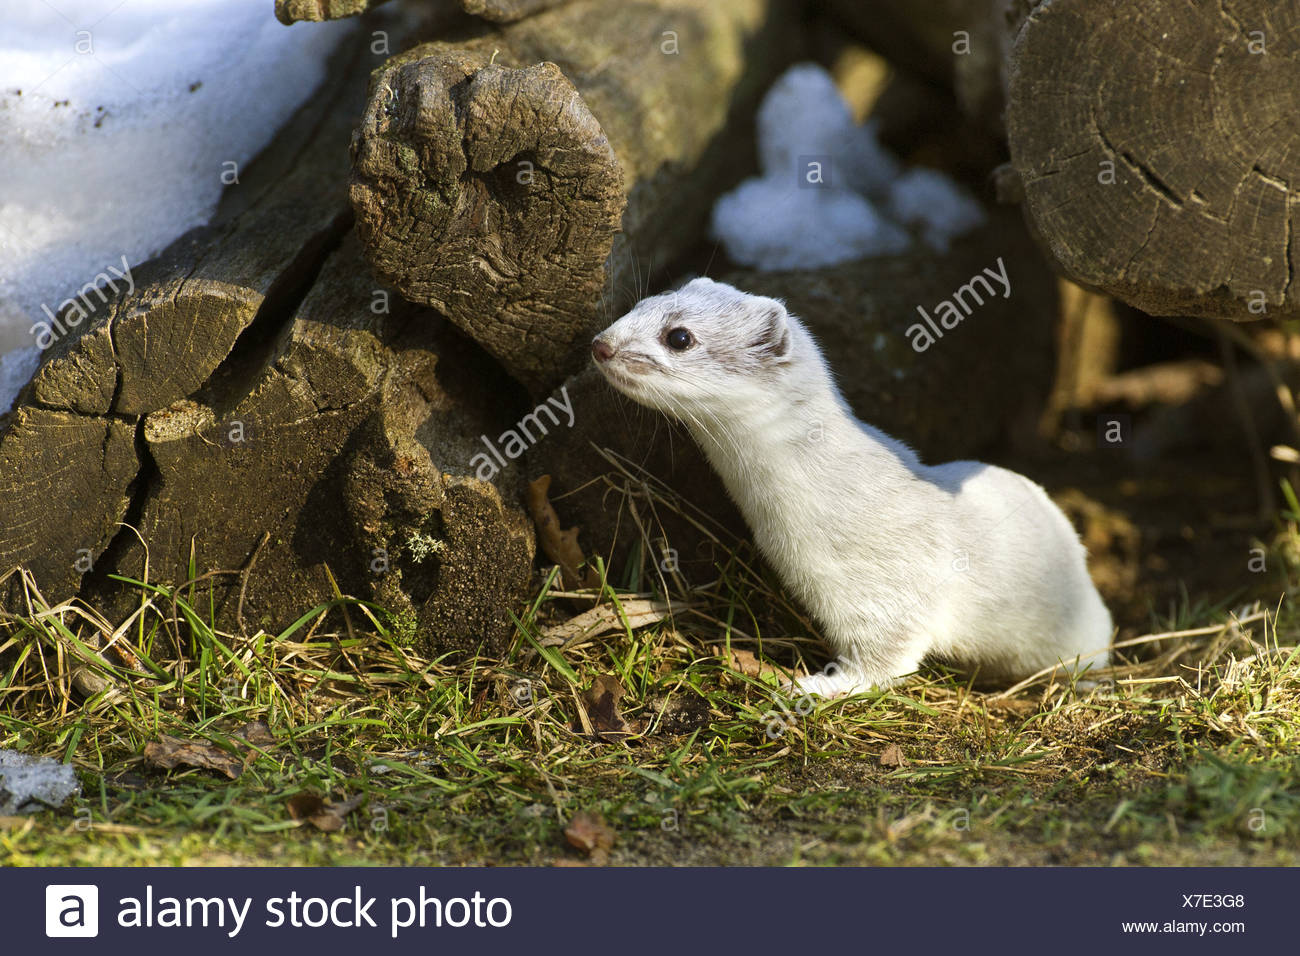 ermine, stoat (Mustela erminea), in winter pelage next woodpile, Germany, Lower Saxony - Stock Image